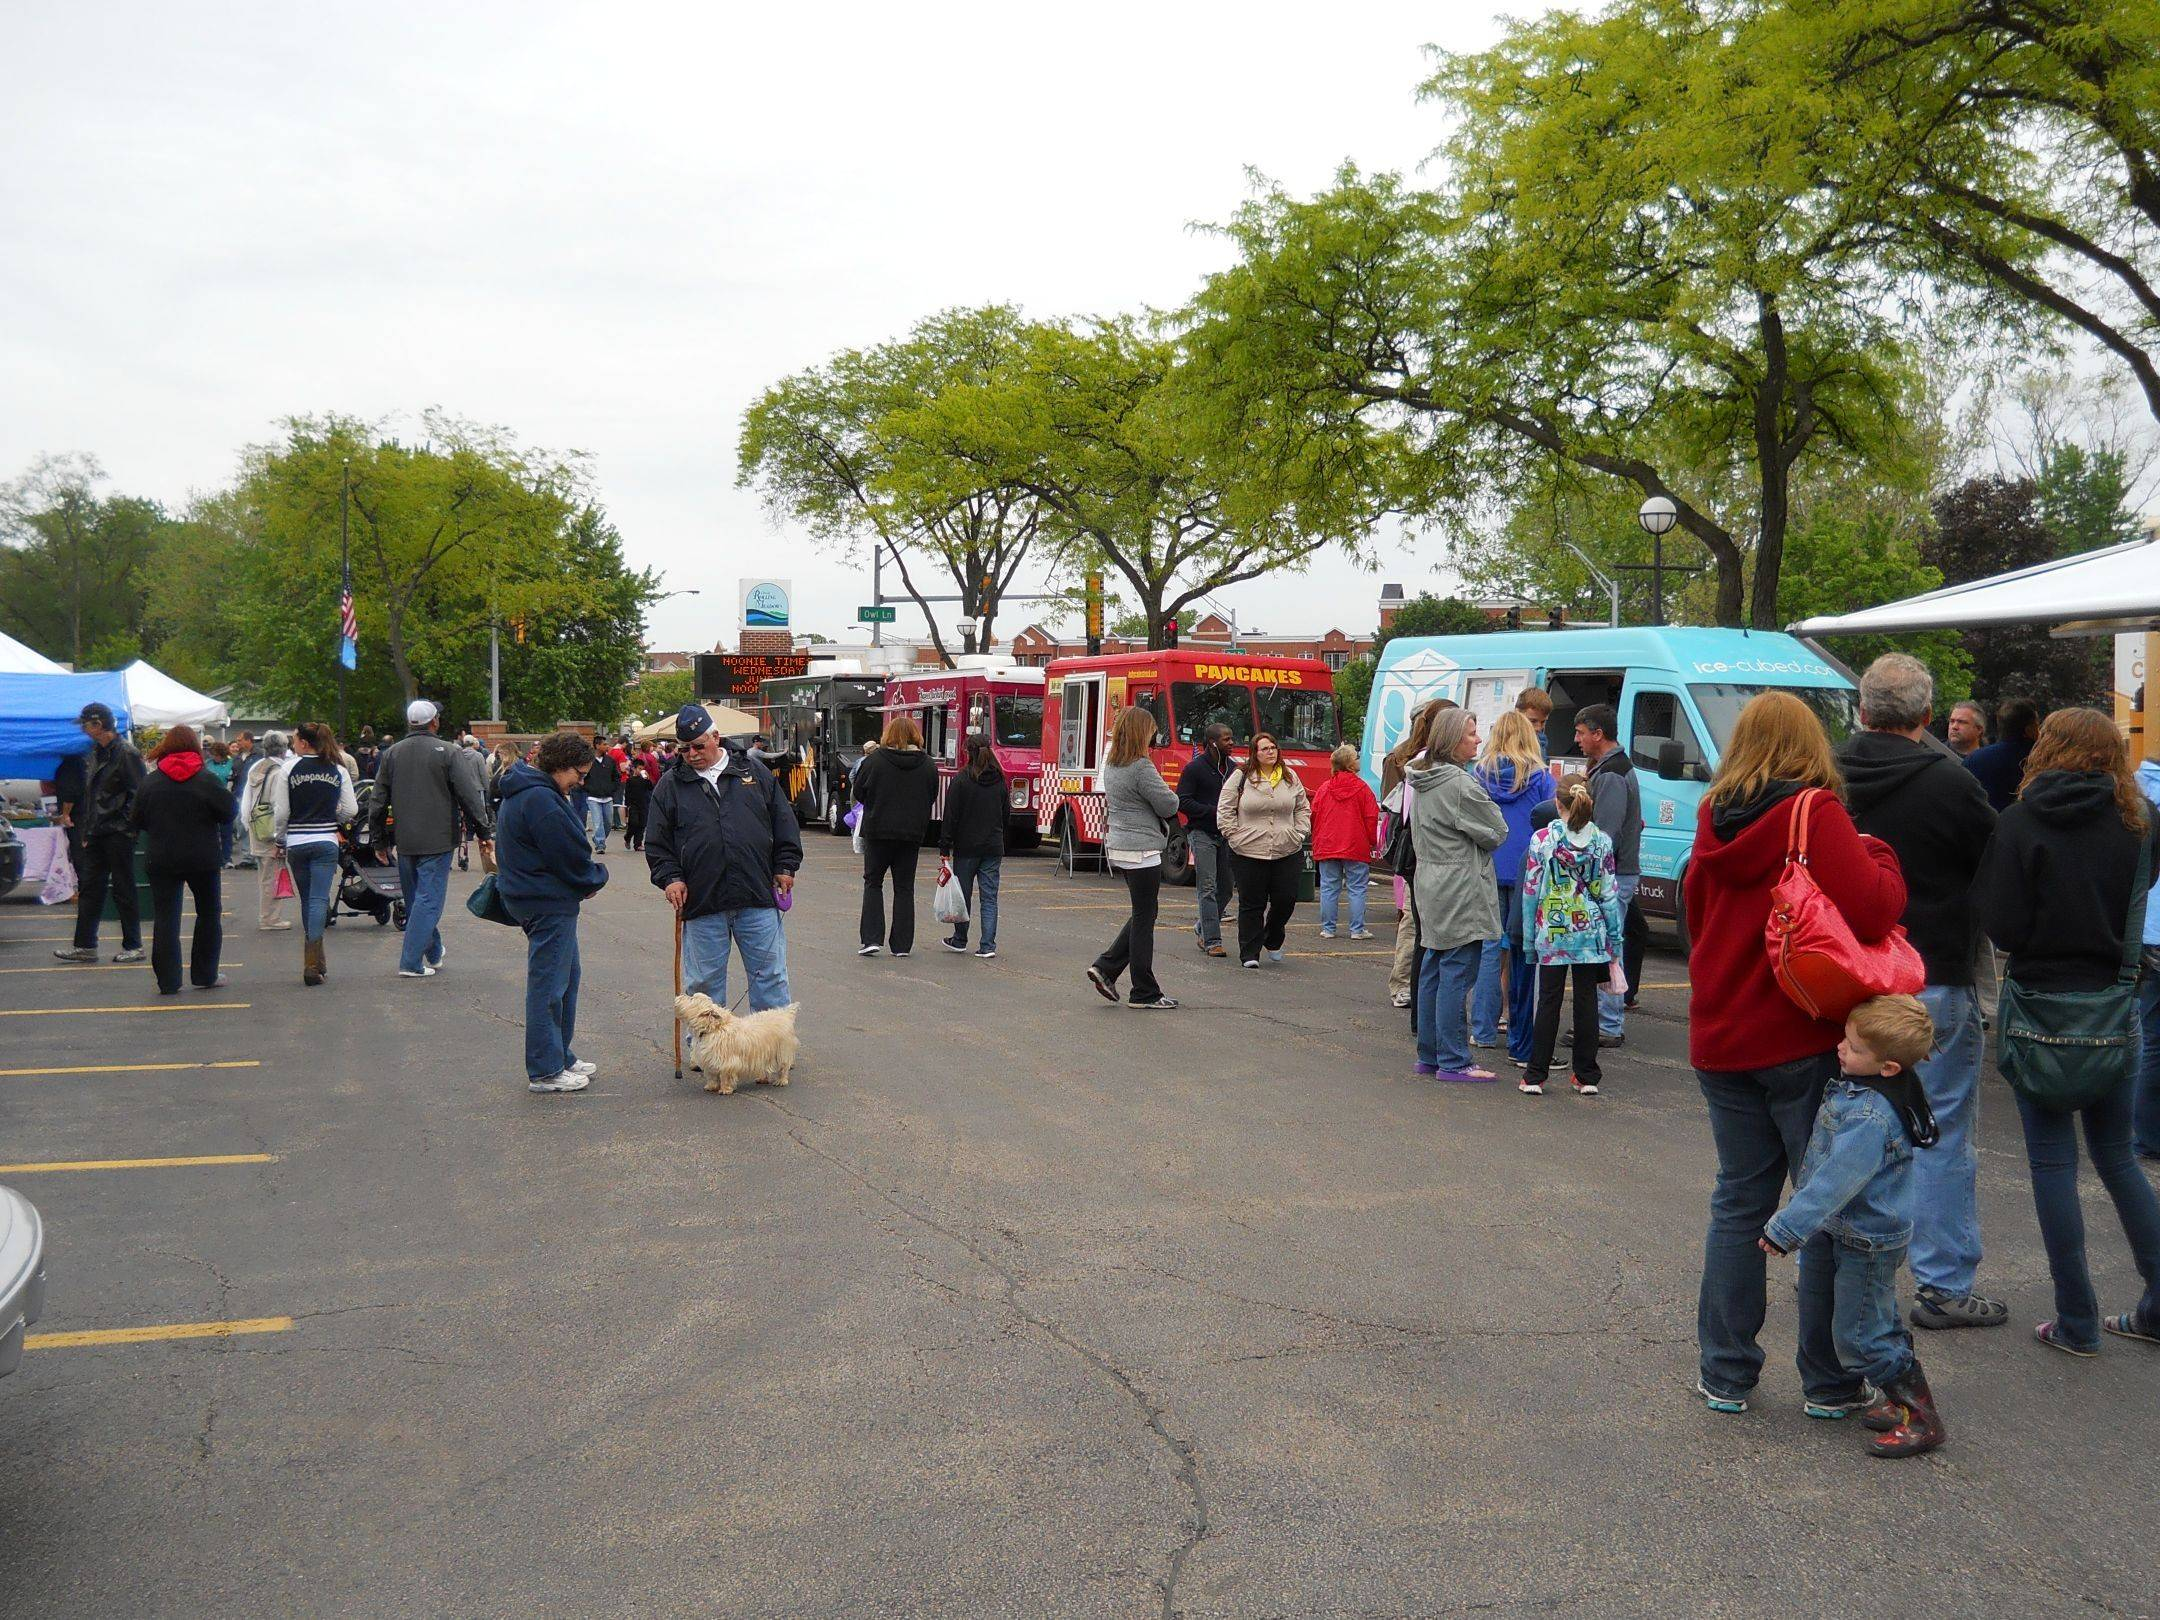 After a successful inaugural season, Rolling Meadows' Farmers Market/Food Truck Saturdays will return for a second year beginning May 24. The market will run on the fourth Saturday of the month through September at city hall.